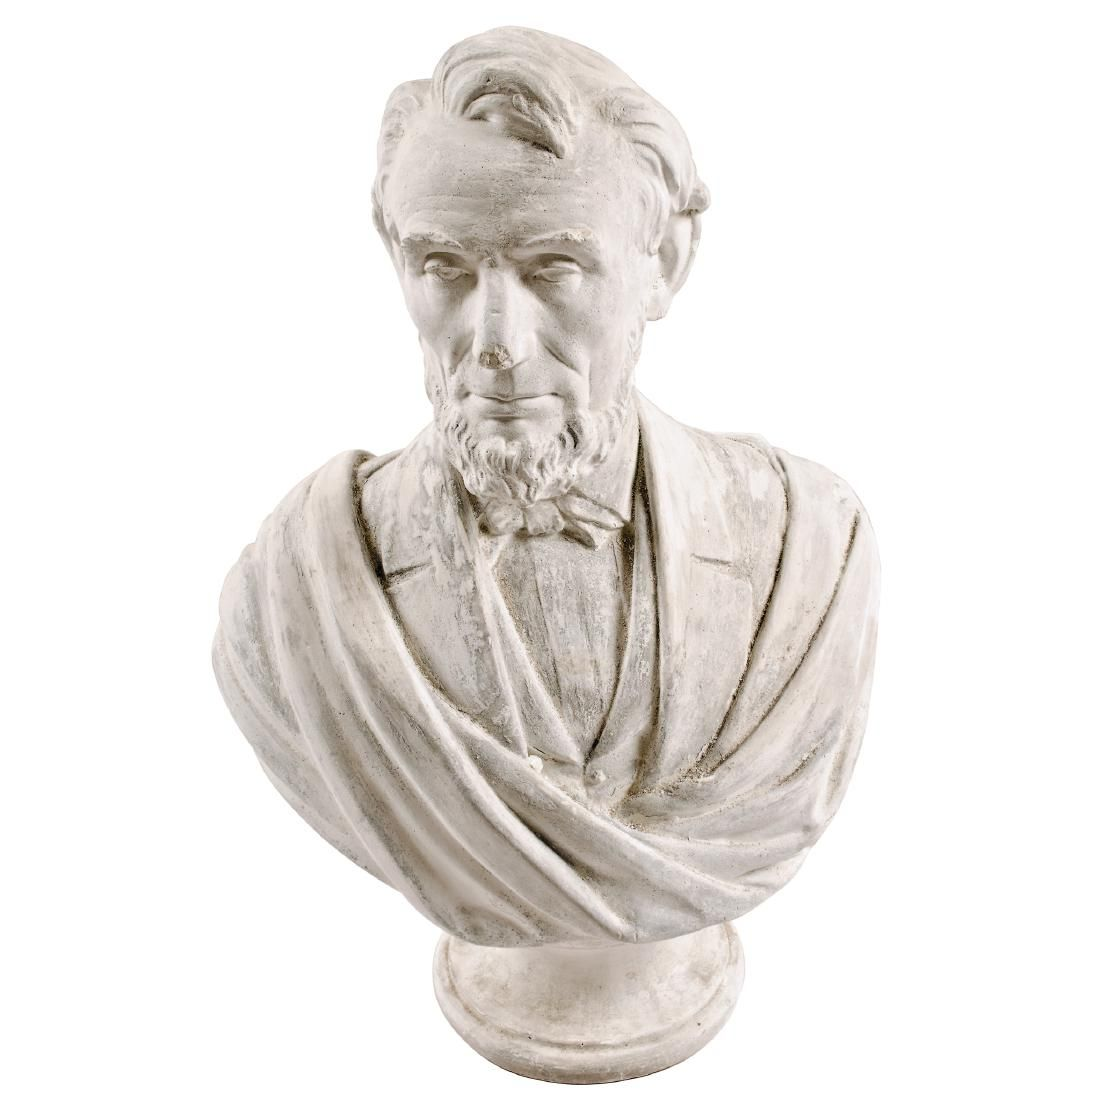 1865 Bust of Abraham Lincoln Pedestal by Morgan